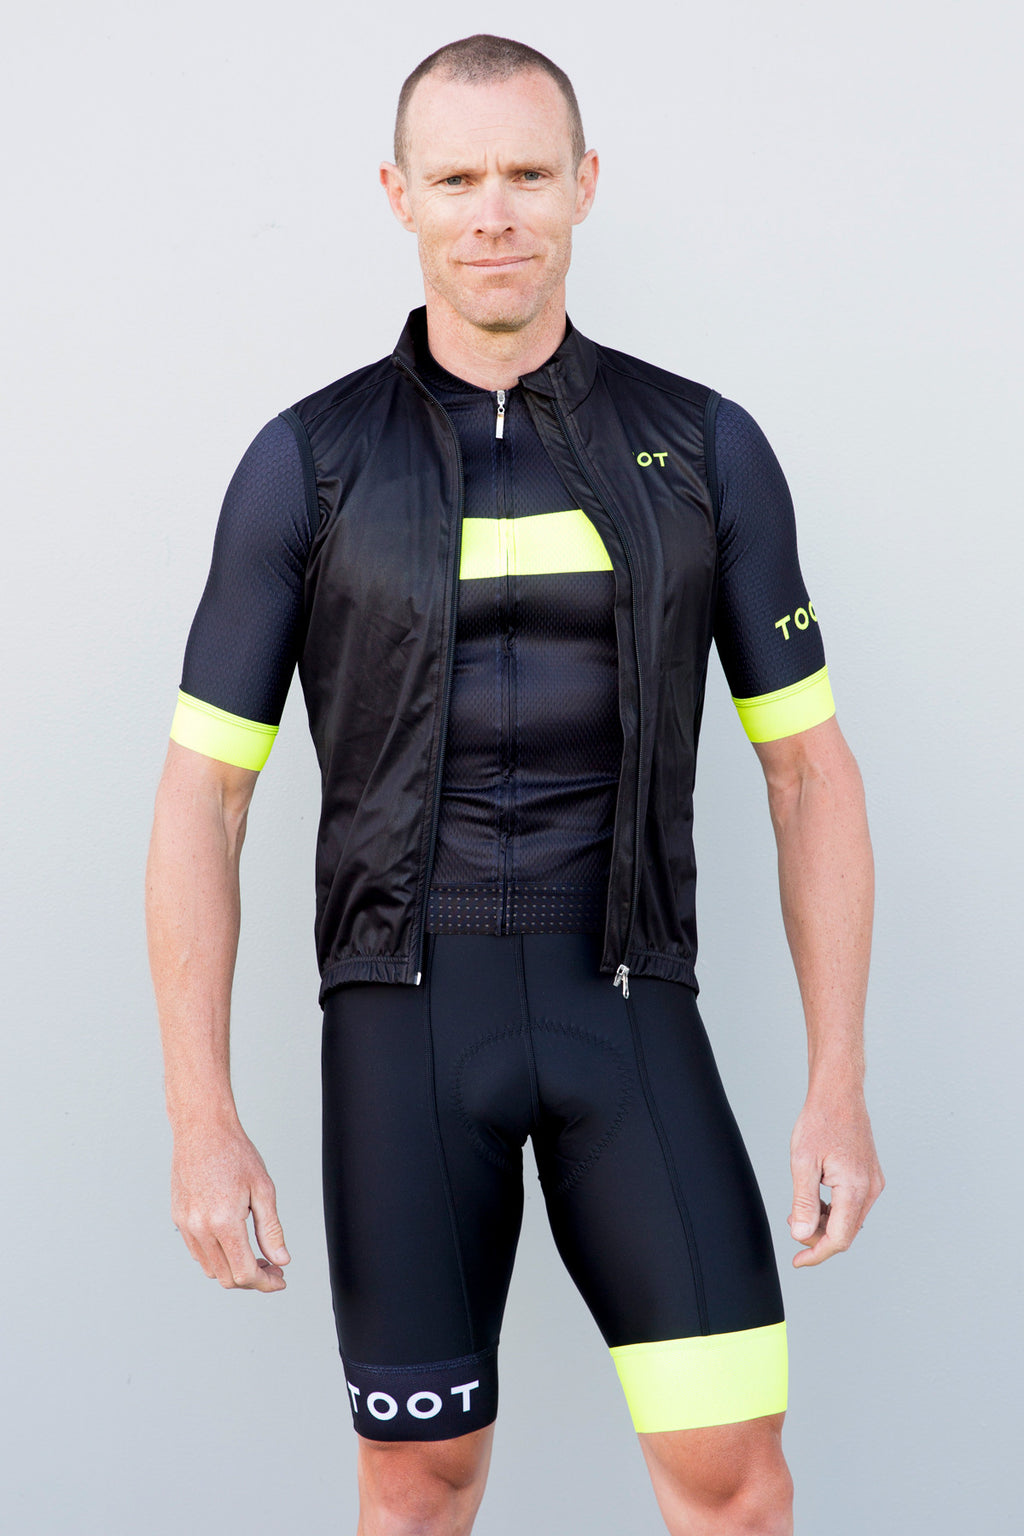 MENS GILET - BLACK WITH YELLOW